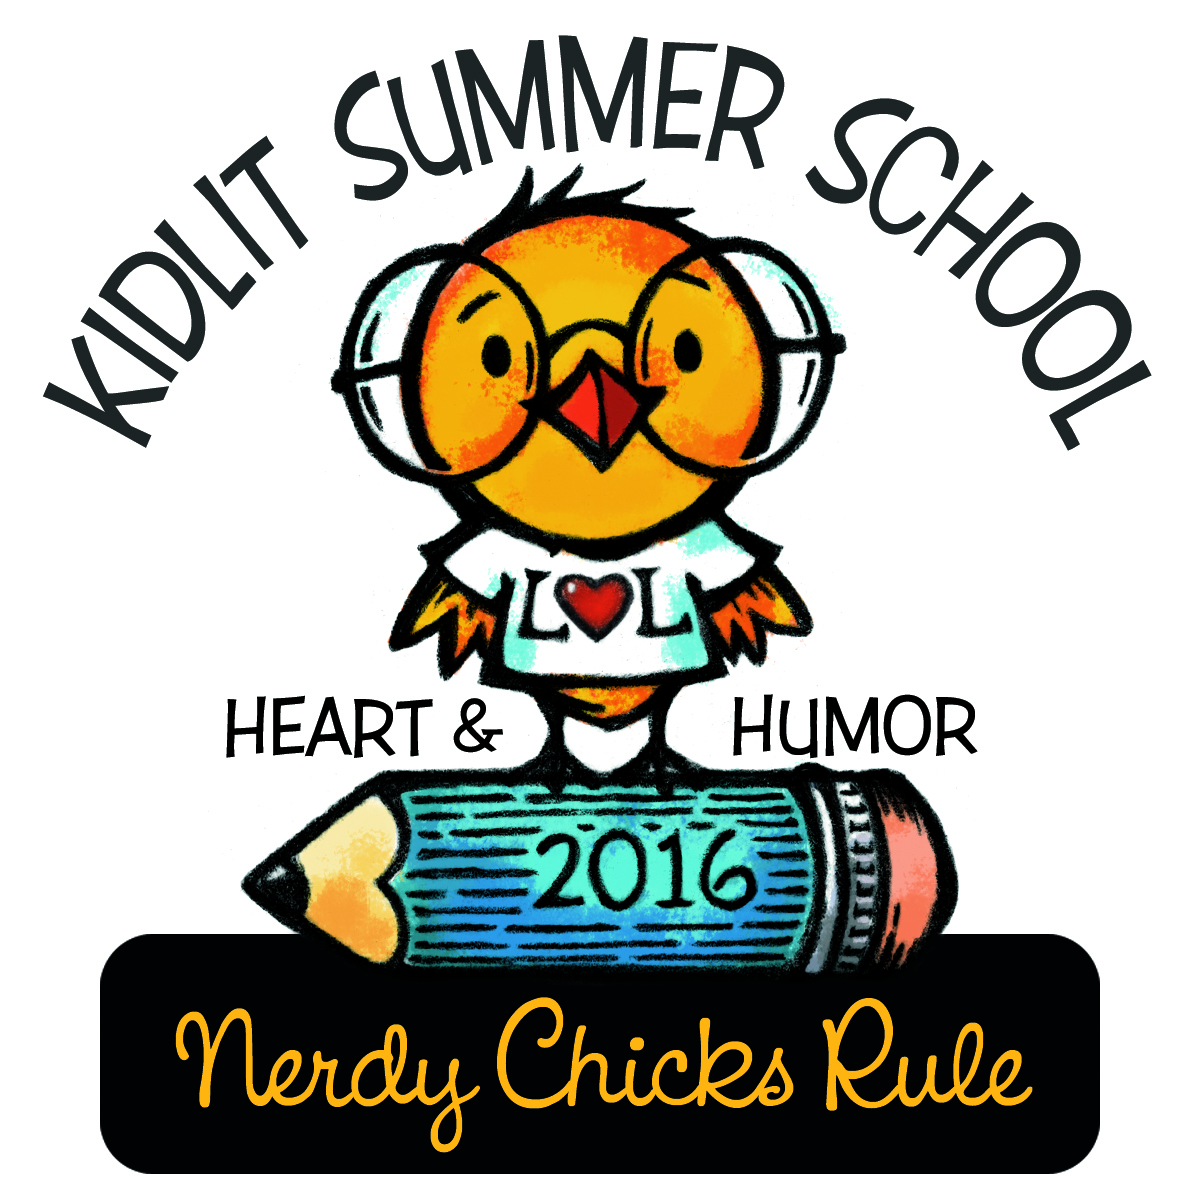 Nerdy Chicks Summer School 2016